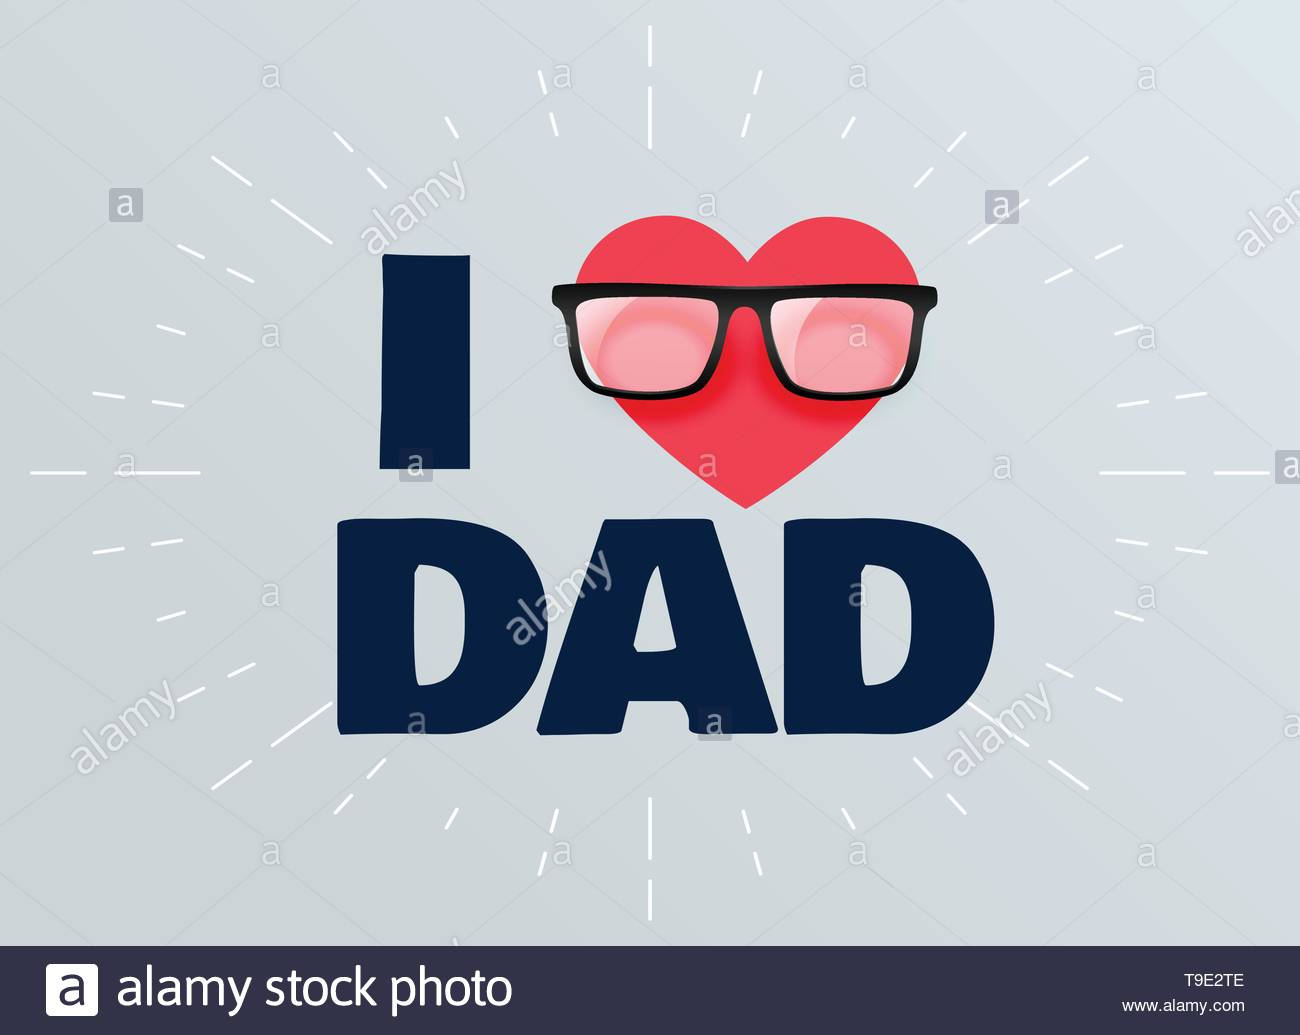 I love dad fathers day background - Stock Image